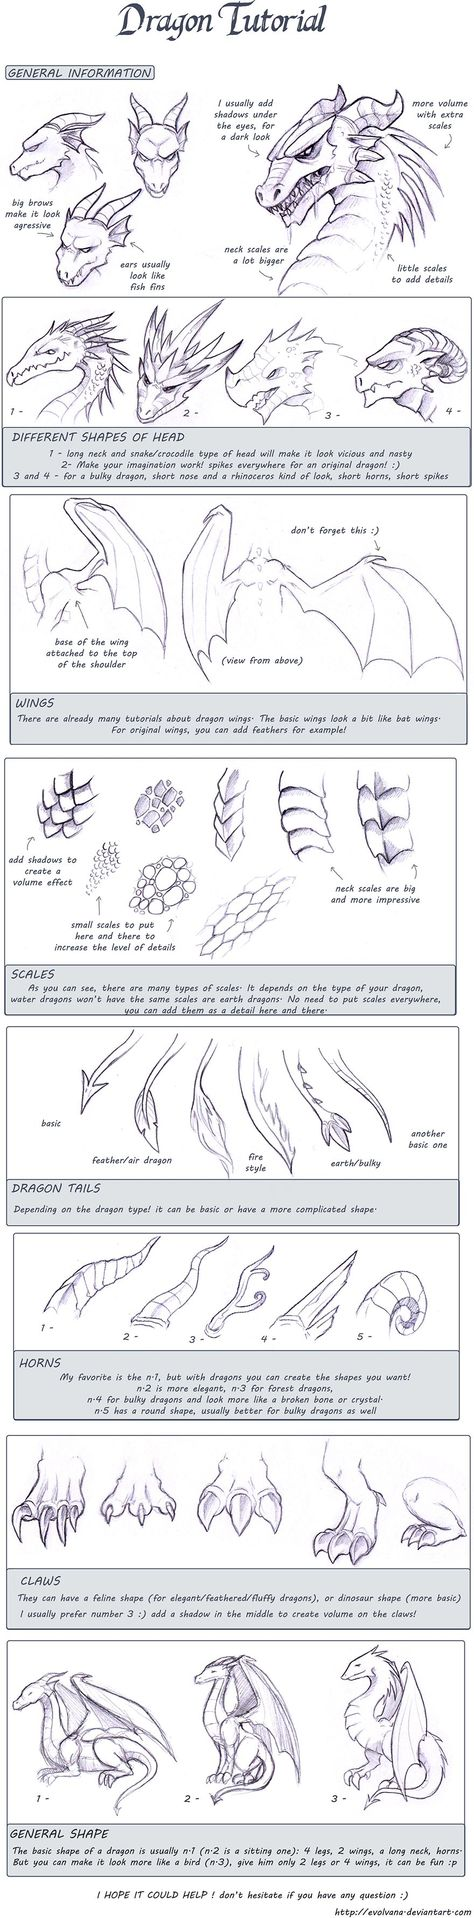 Dragon tutorial by Evolving.deviantart.com ~ love this... Its fun to draw fantasy animals & let your mind go wherever, cause there's no right or wrong with a mythical subject!